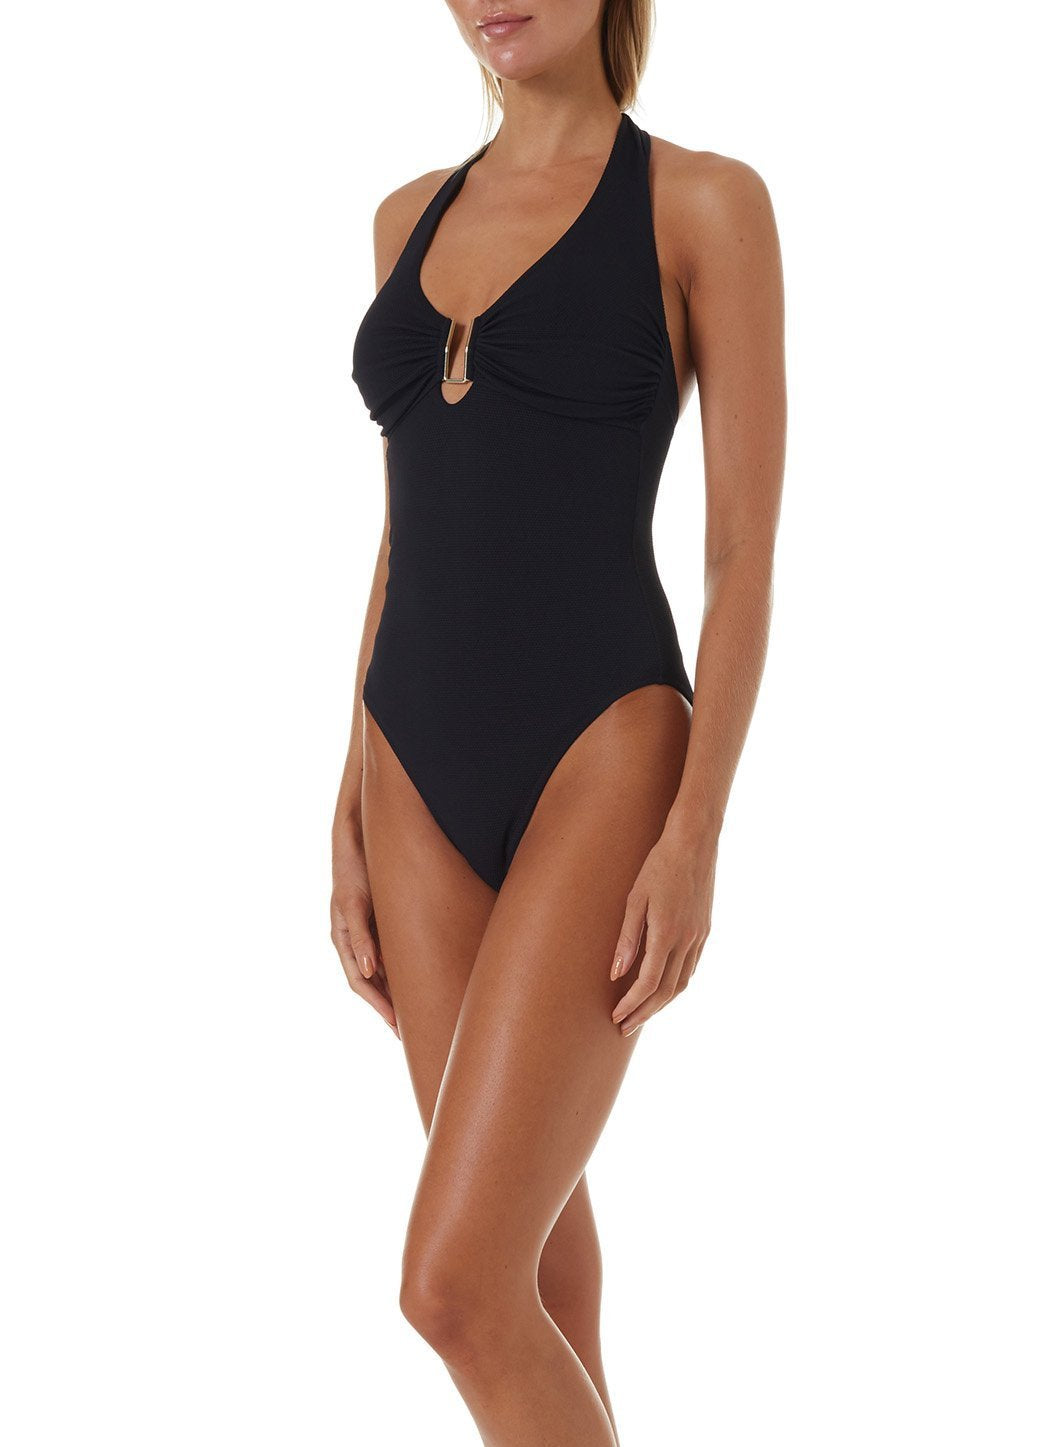 tampa black pique swimsuit